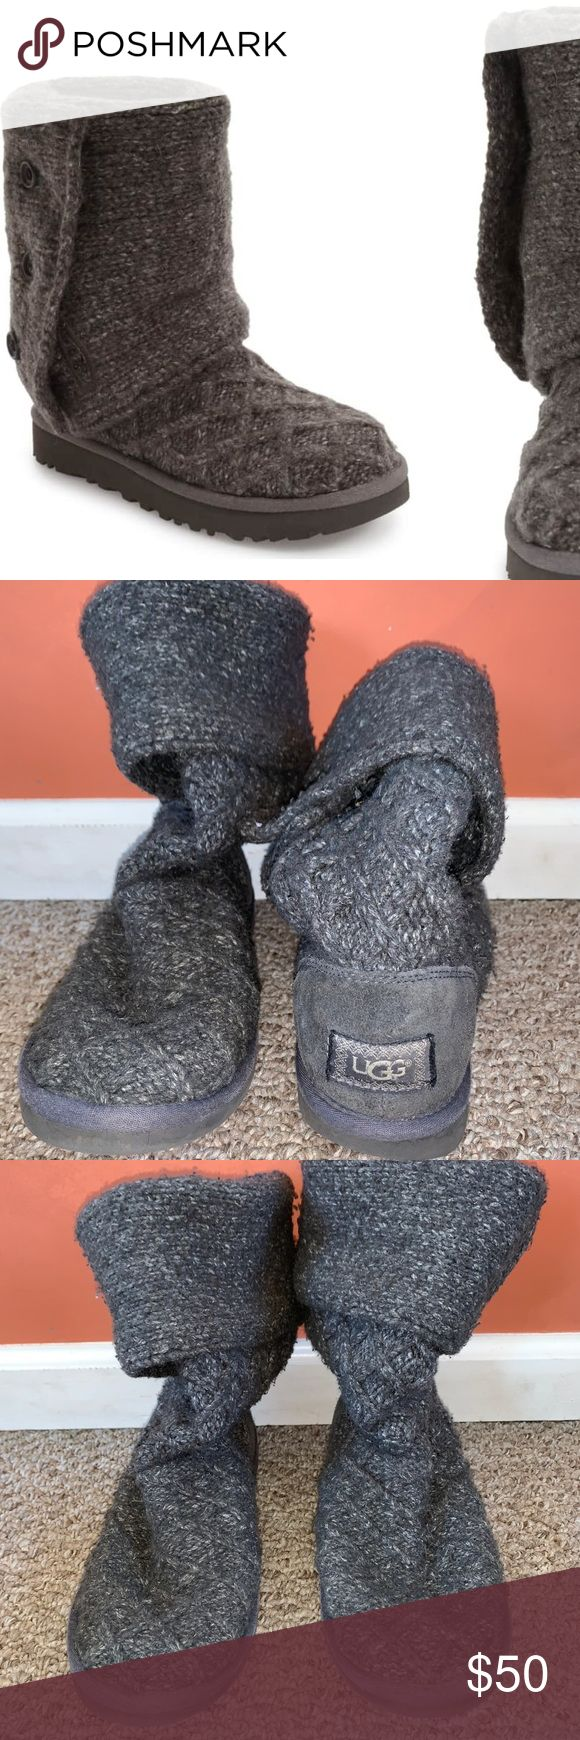 UGG Boots Gray Lattice Cardy Boot, lightly worn, excellent